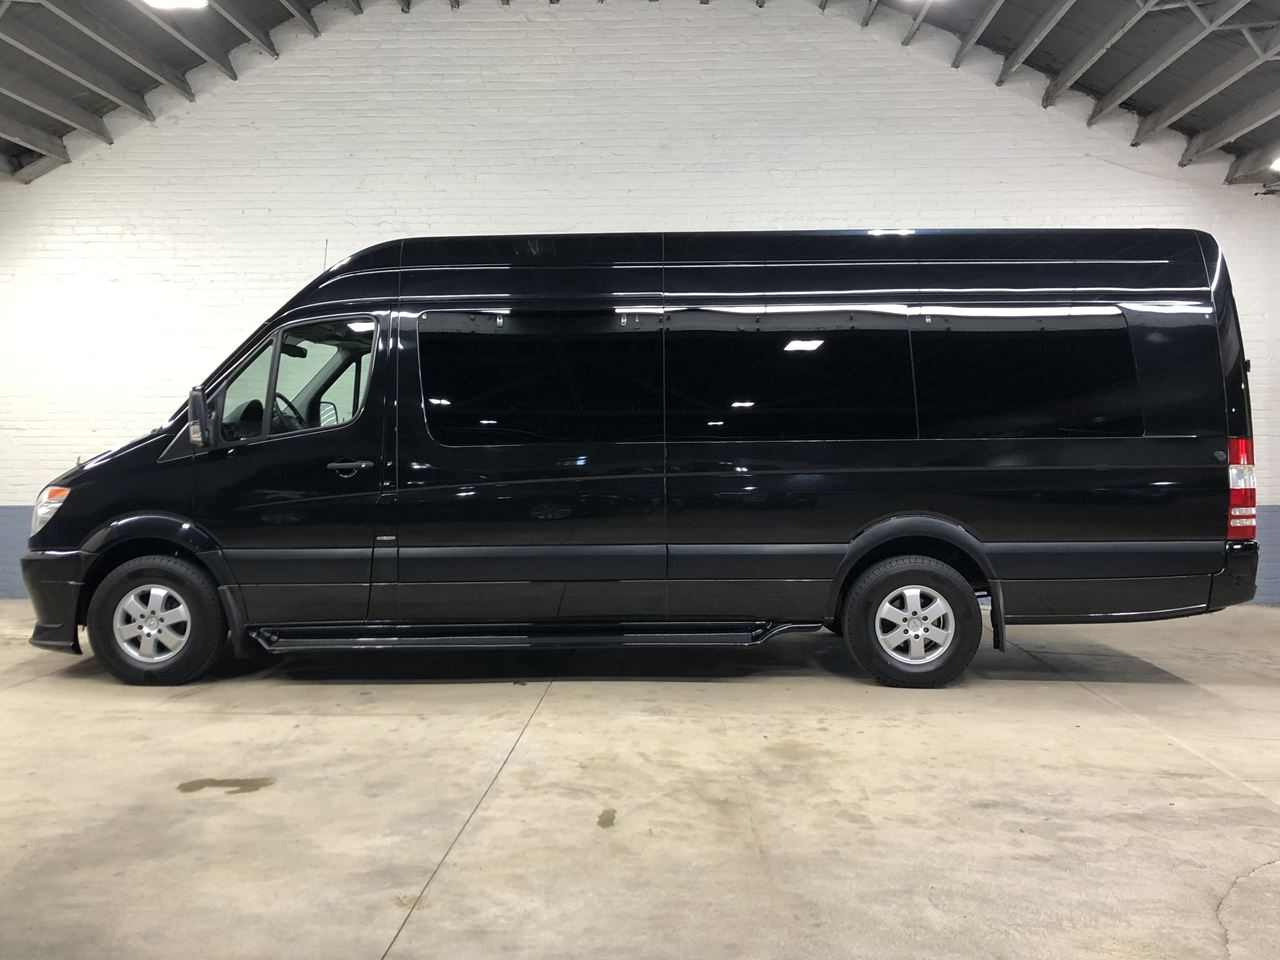 2013 Mercedes Benz Midwest Automotive Designs Sprinter Limousine Limousine